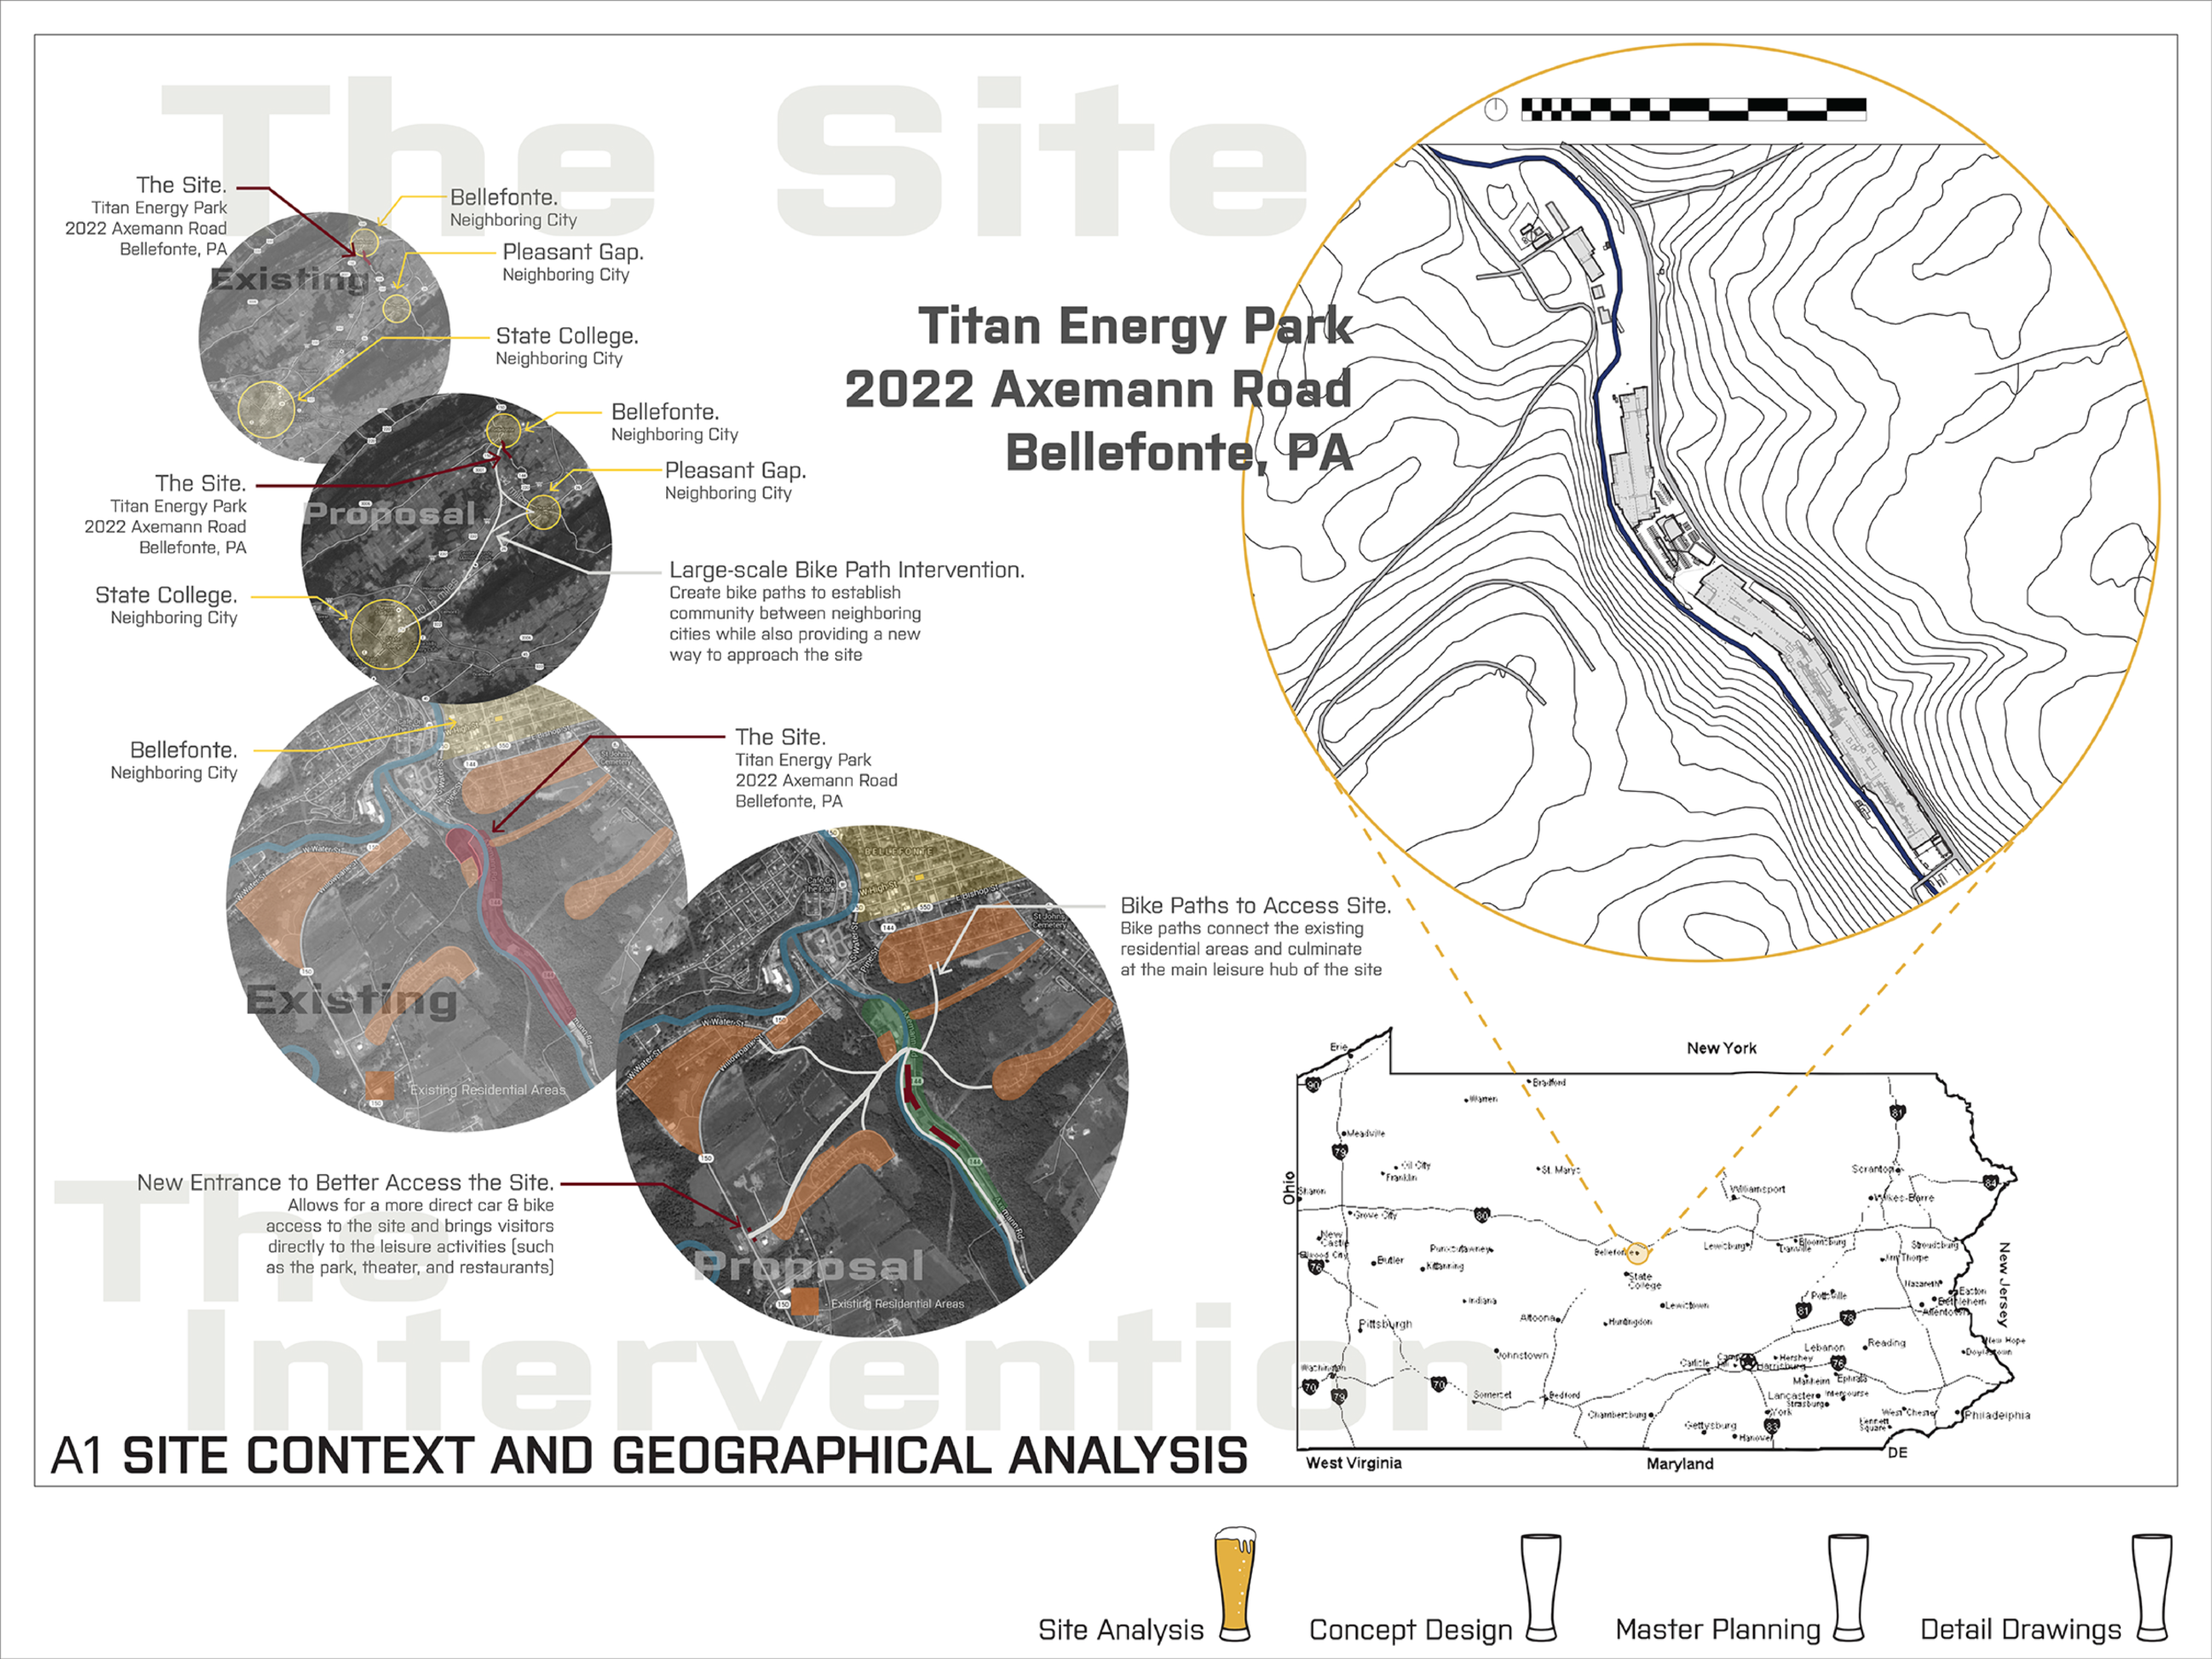 SITE ANALYSIS AND CONTEXT